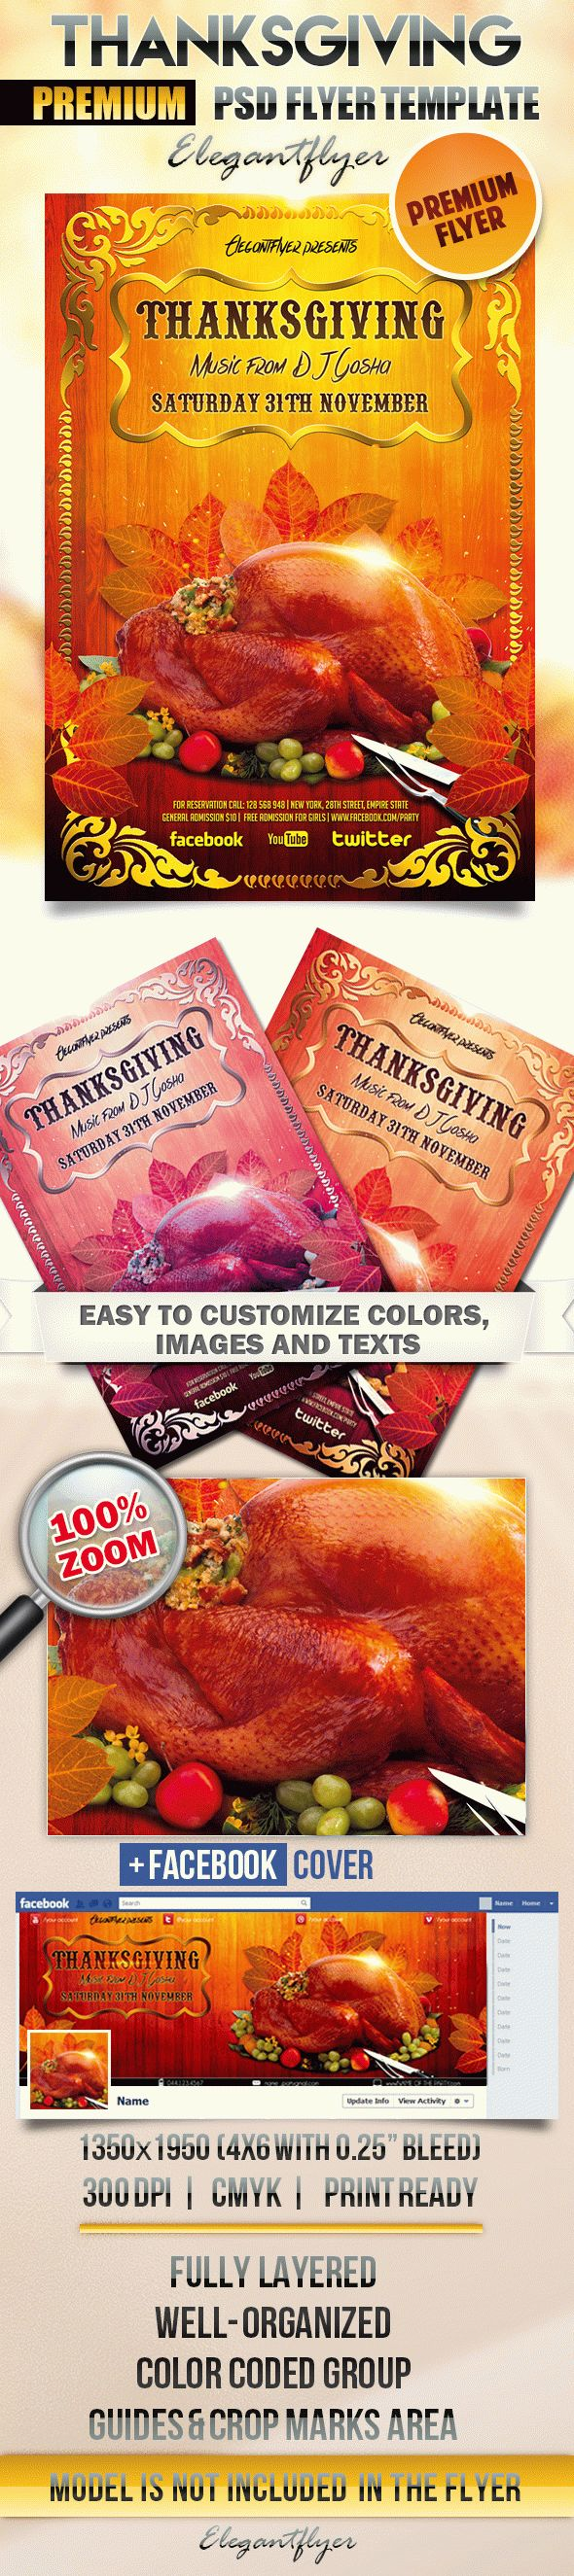 Perfect Thanksgiving Turkey PSD Template